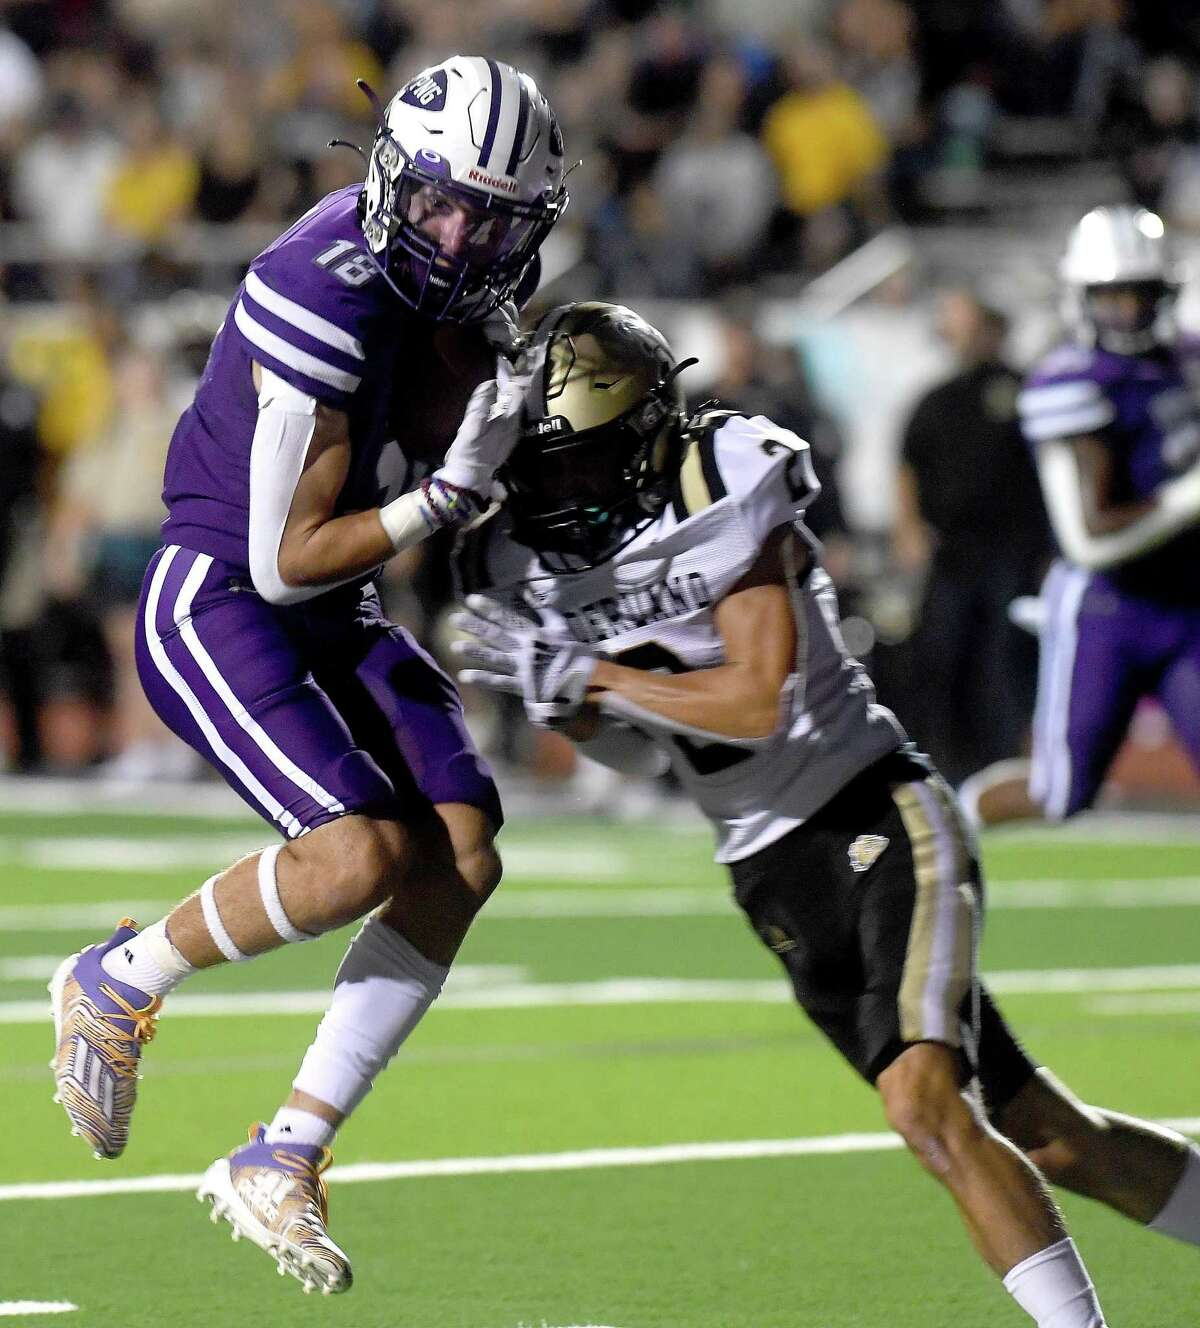 Port Neches-Groves' Chance Prosperie leaps into the end zone as Nederland's Slade Stoker closes in during Friday's Mid-County match-up at PNG. Photo made Friday, September 24, 2021 Kim Brent/The Enterprise